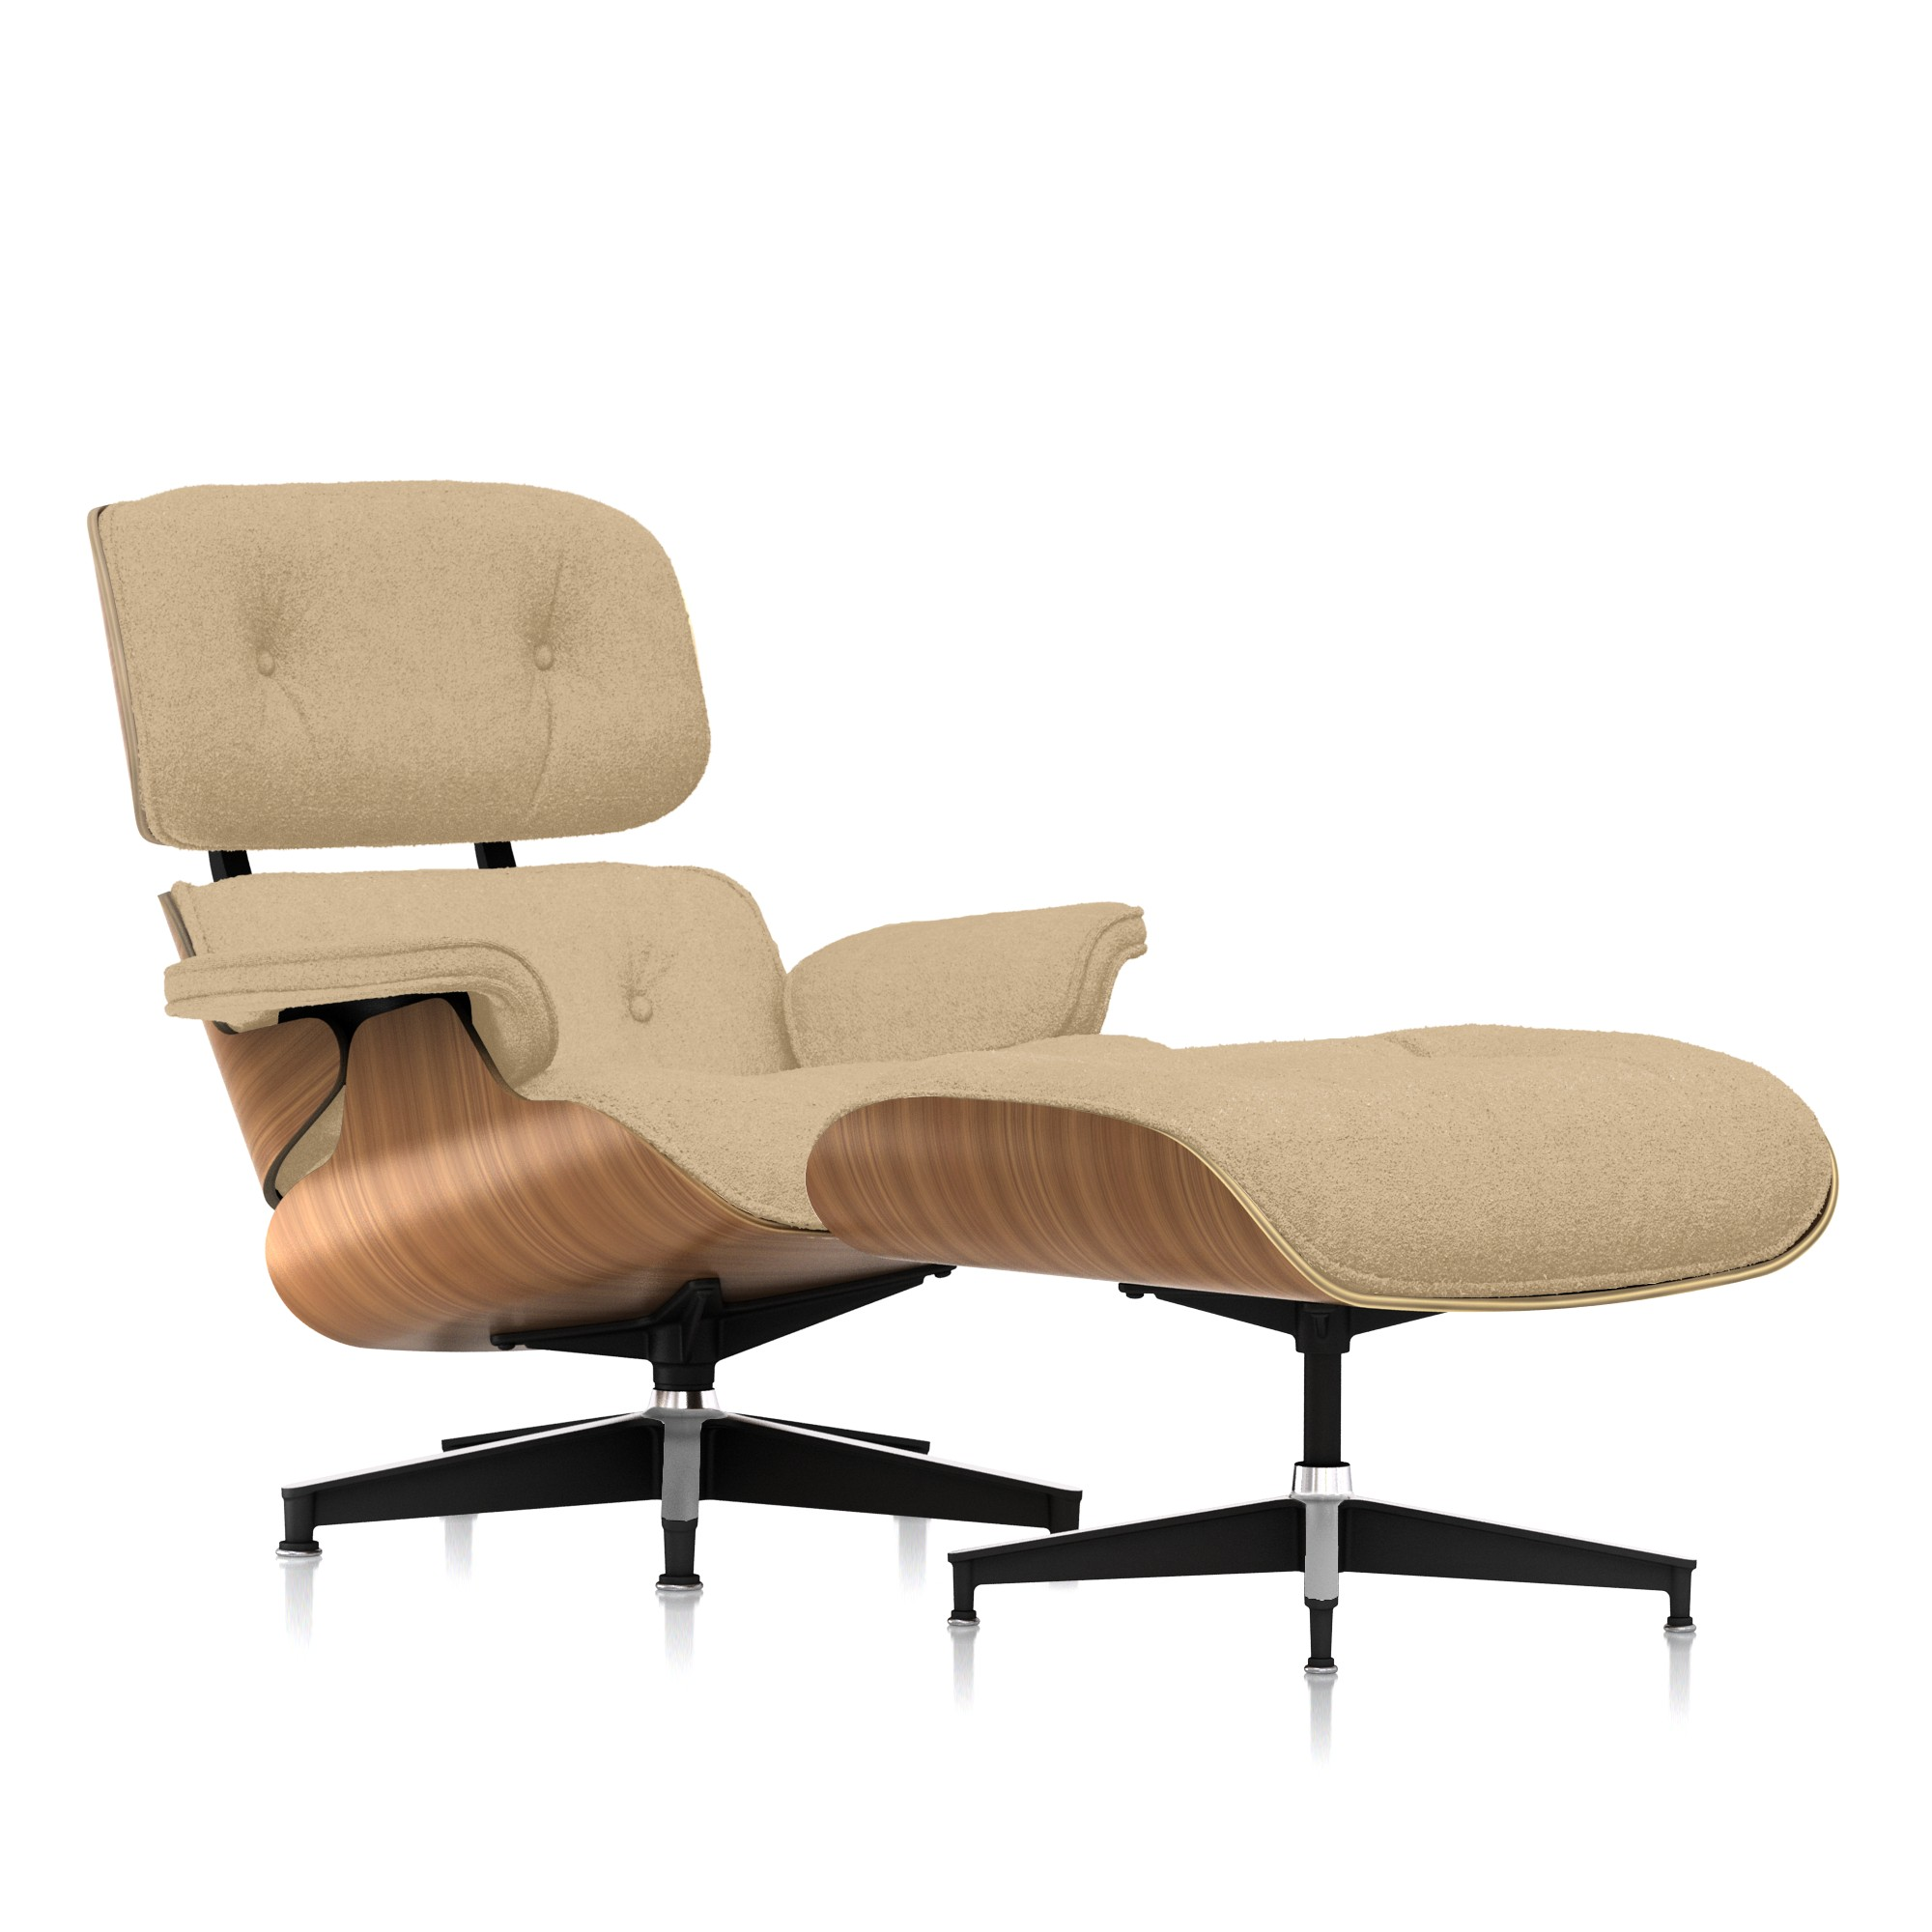 Eames Chair With Ottoman Eames Lounge Chair And Ottoman Premium Mohair By Herman Miller